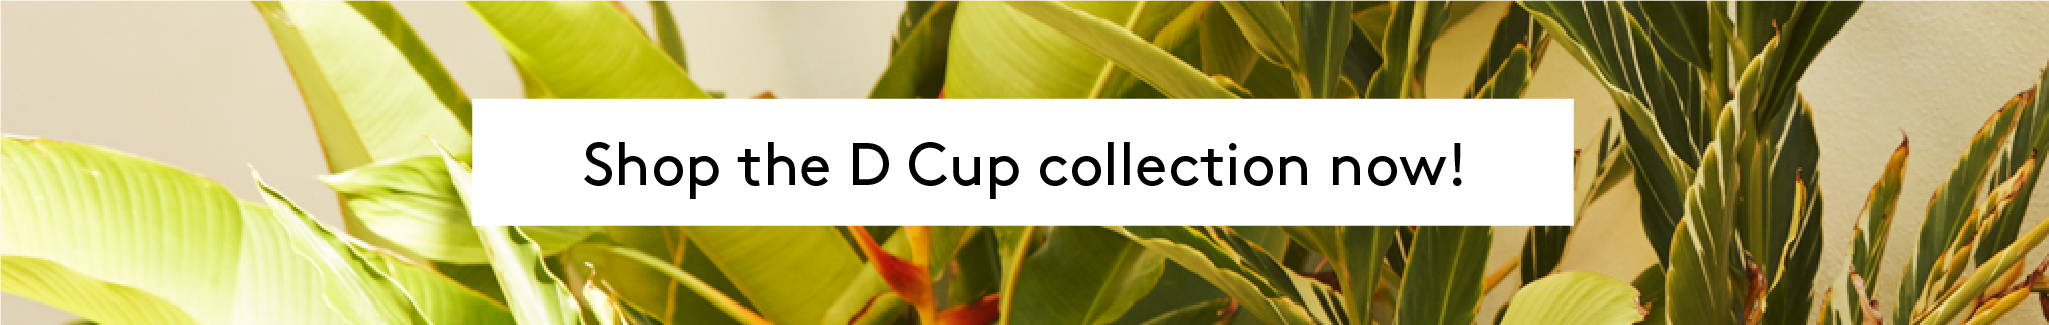 Shop the D CUP collection now!